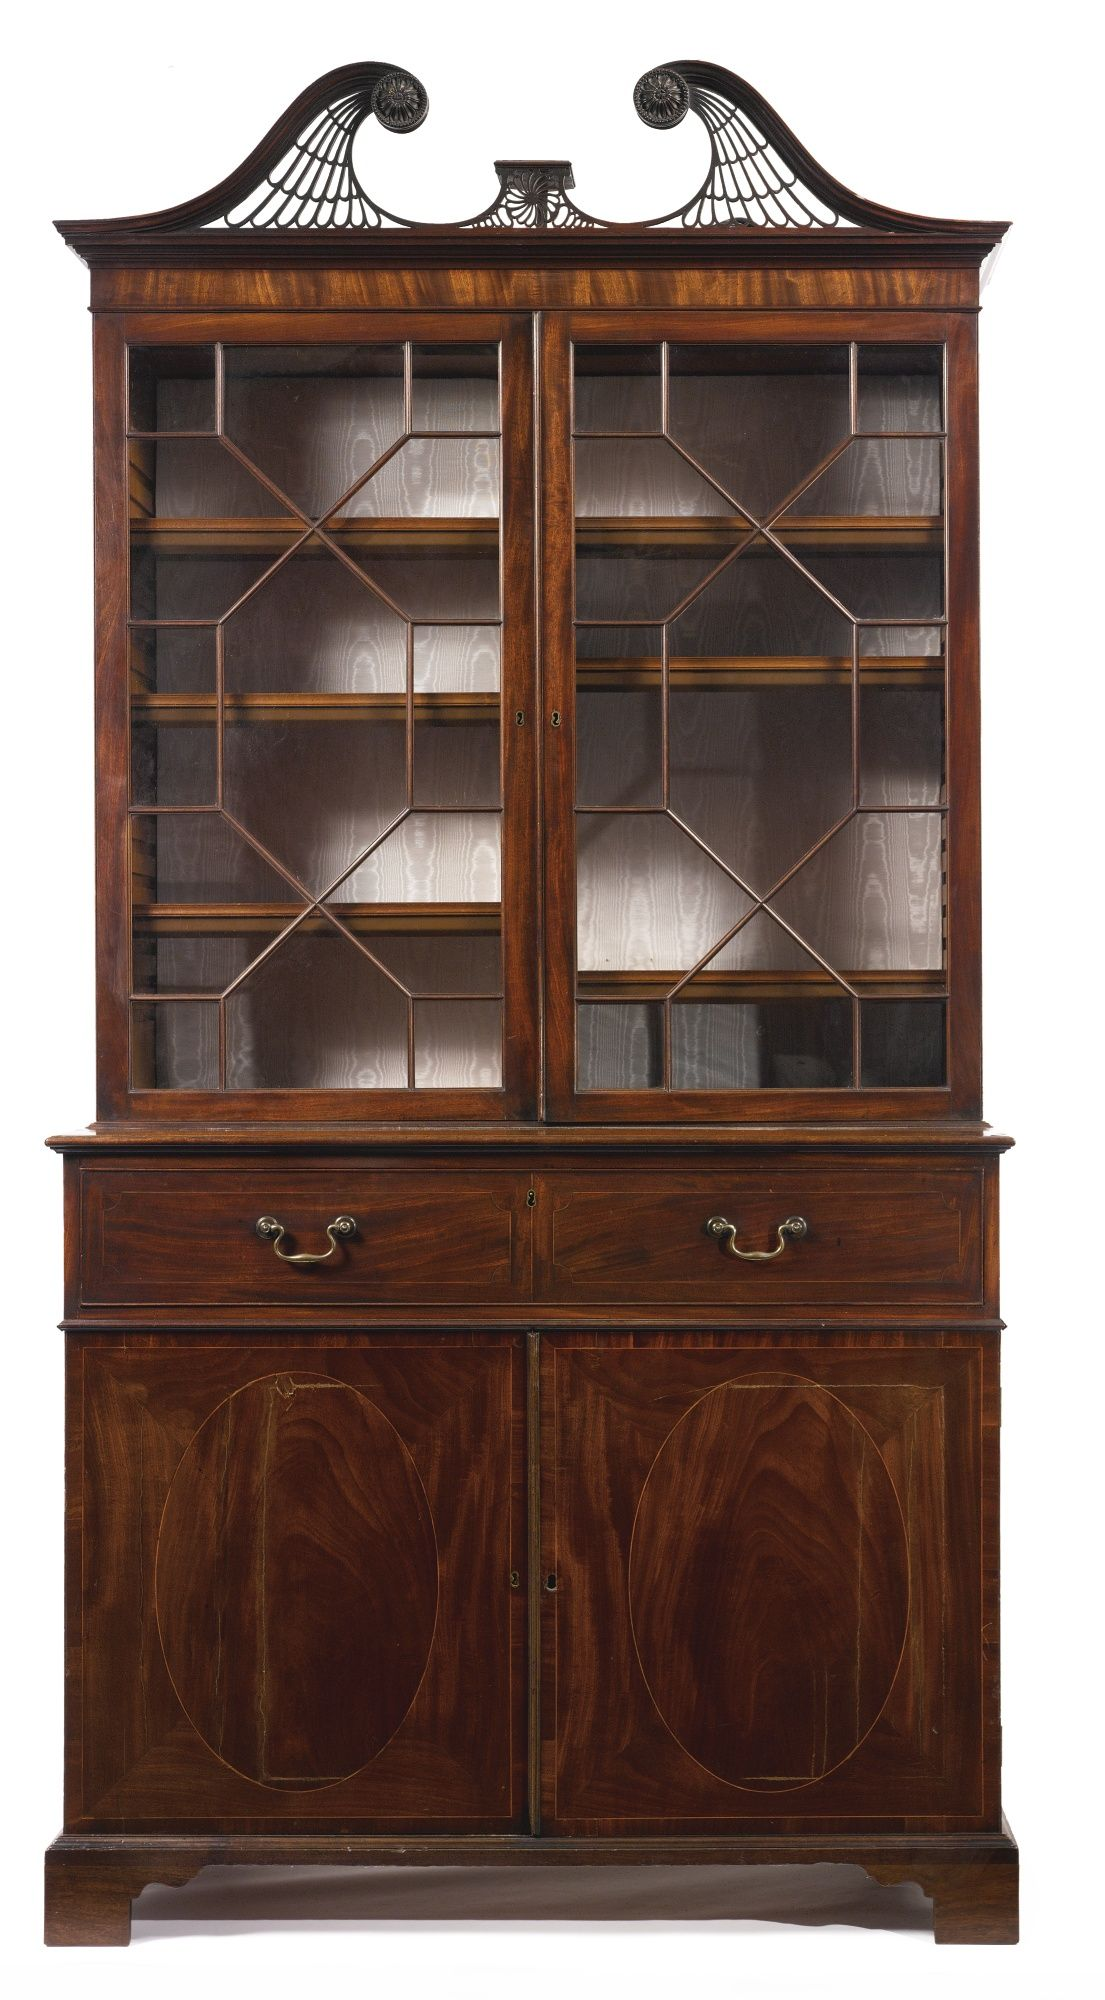 A Fine George III mahogany & satinwood secrétaire bookcase possibly